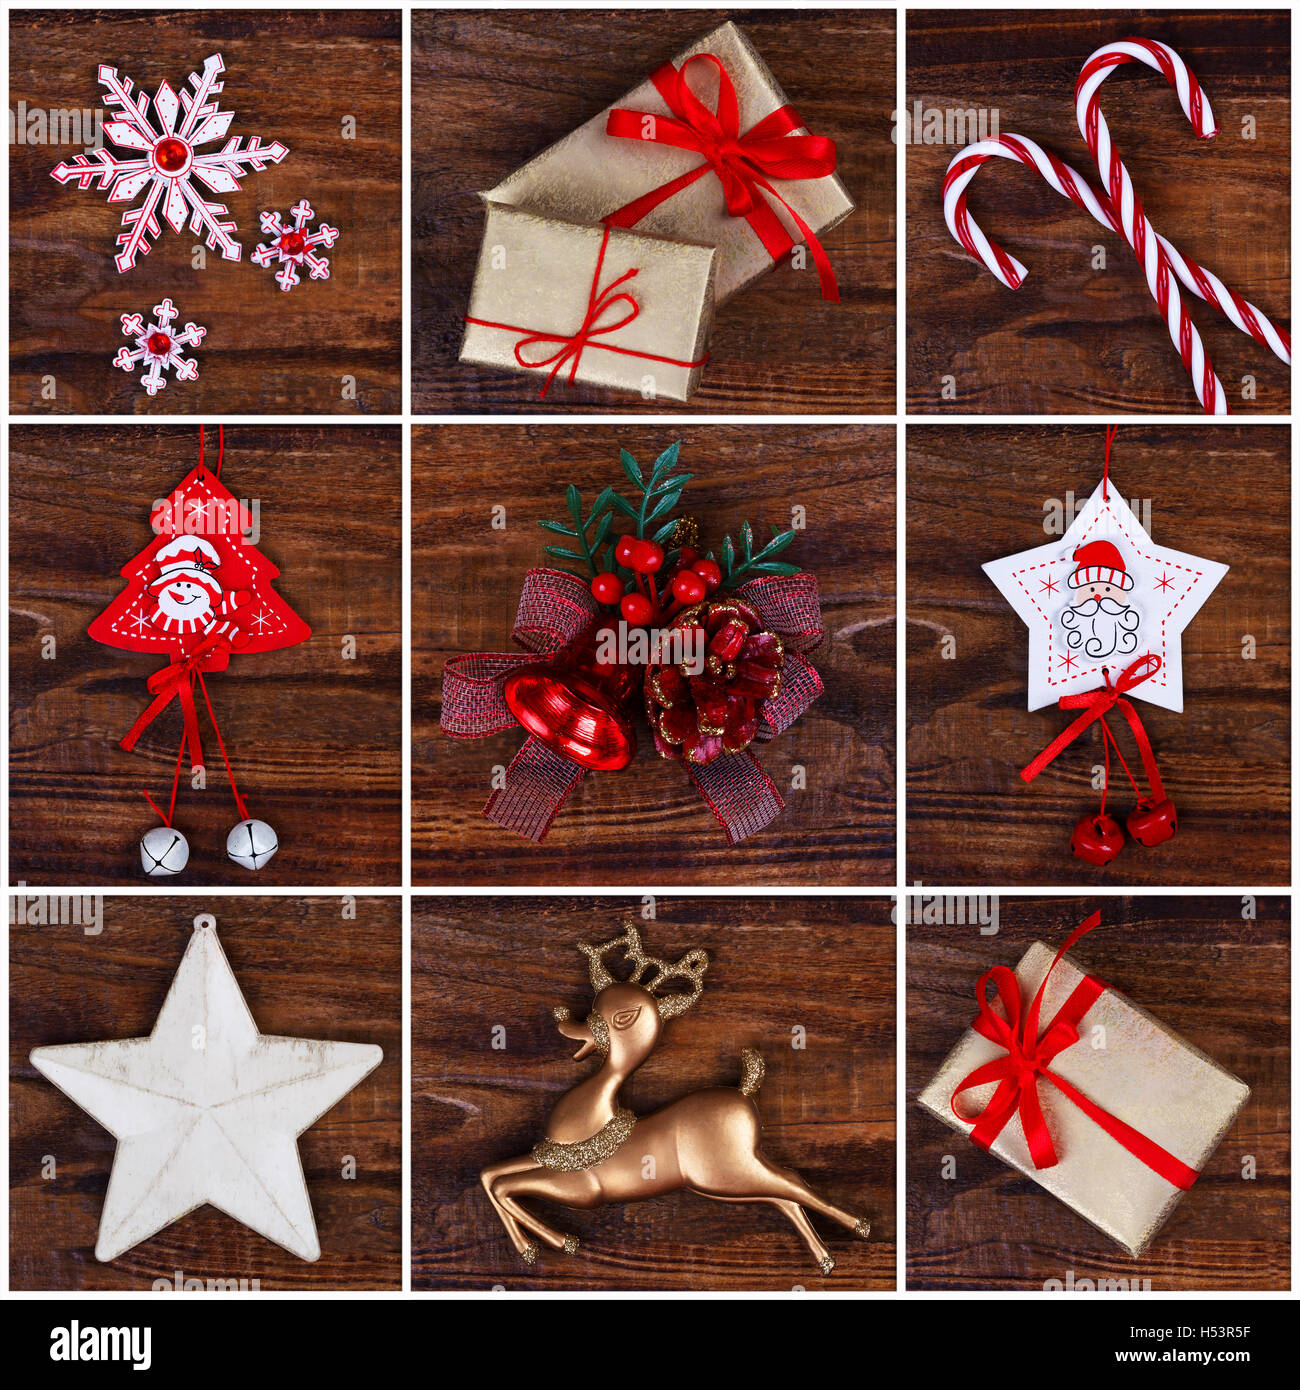 Christmas decorations collage for greetings card or background - Stock Image